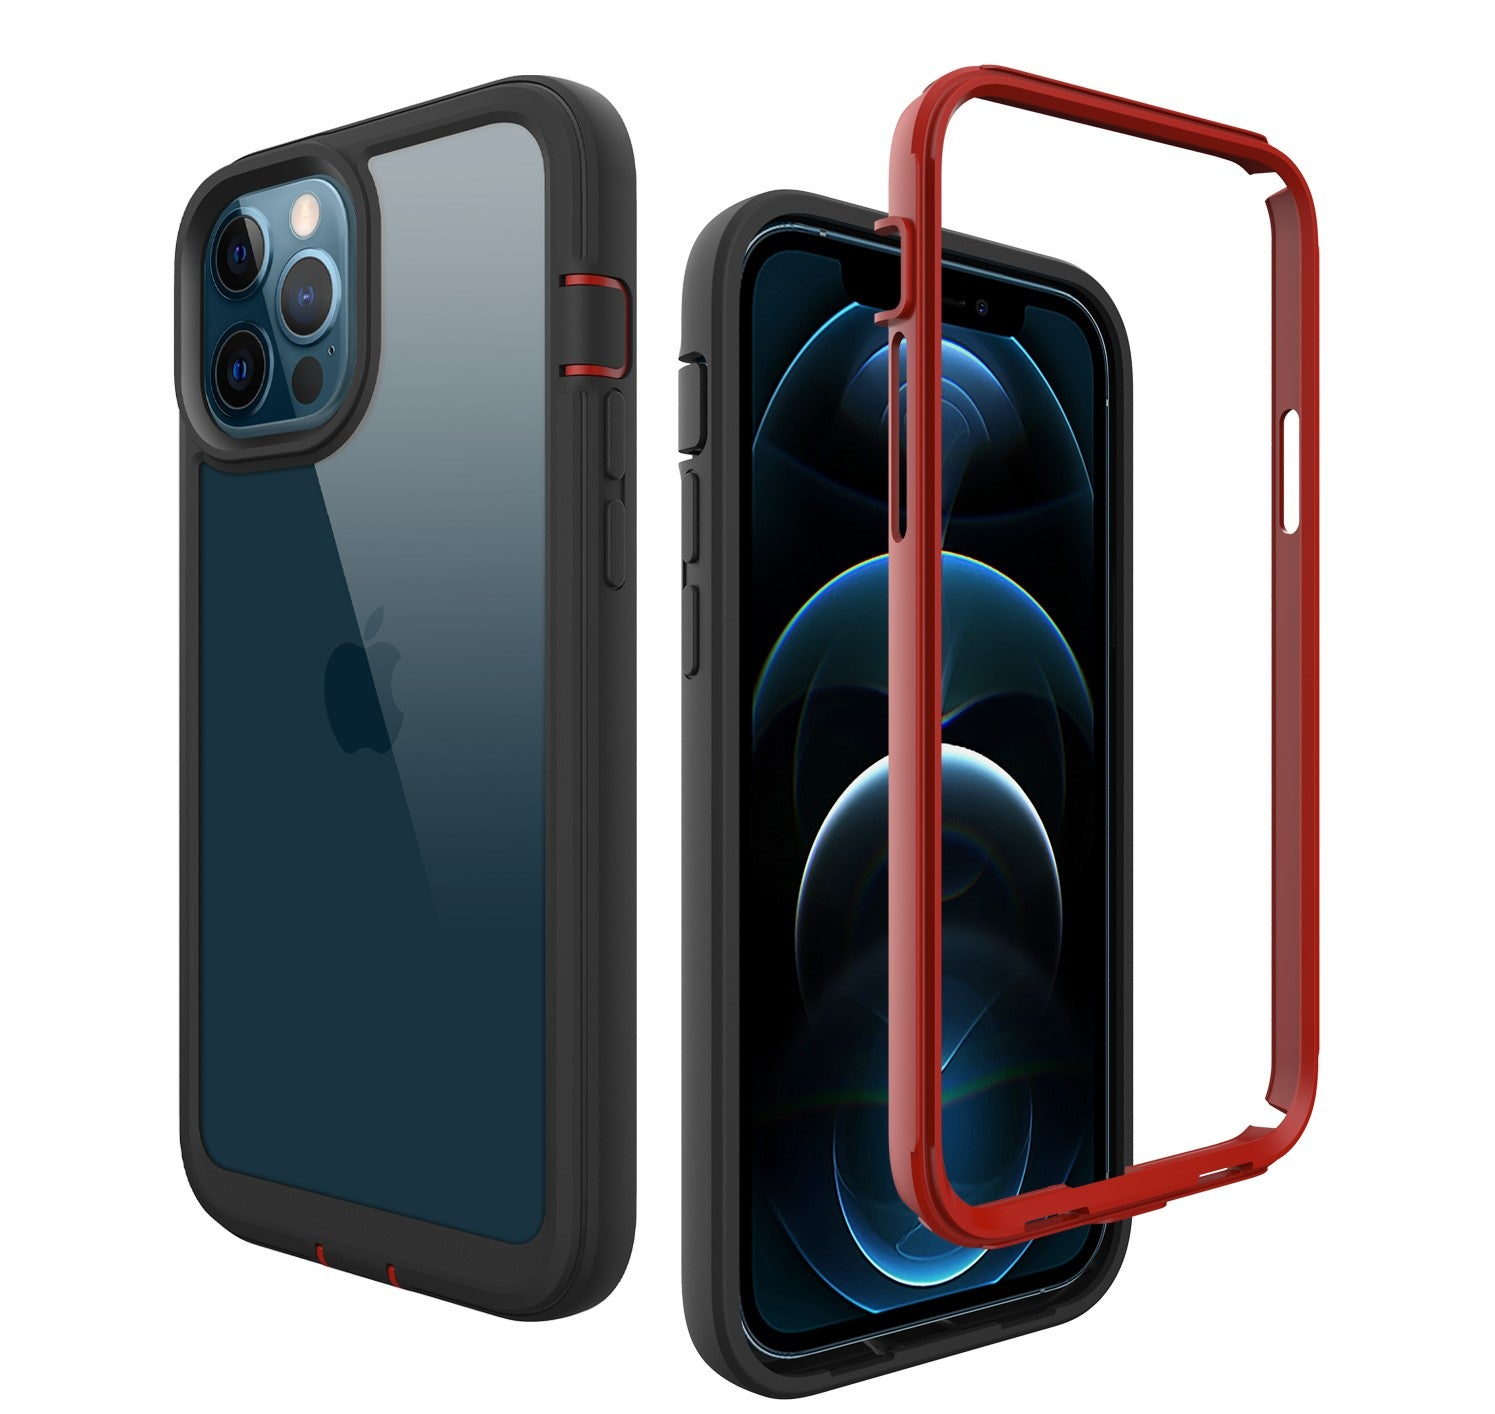 ZEOS Terrain Clear Case for iPhone 12